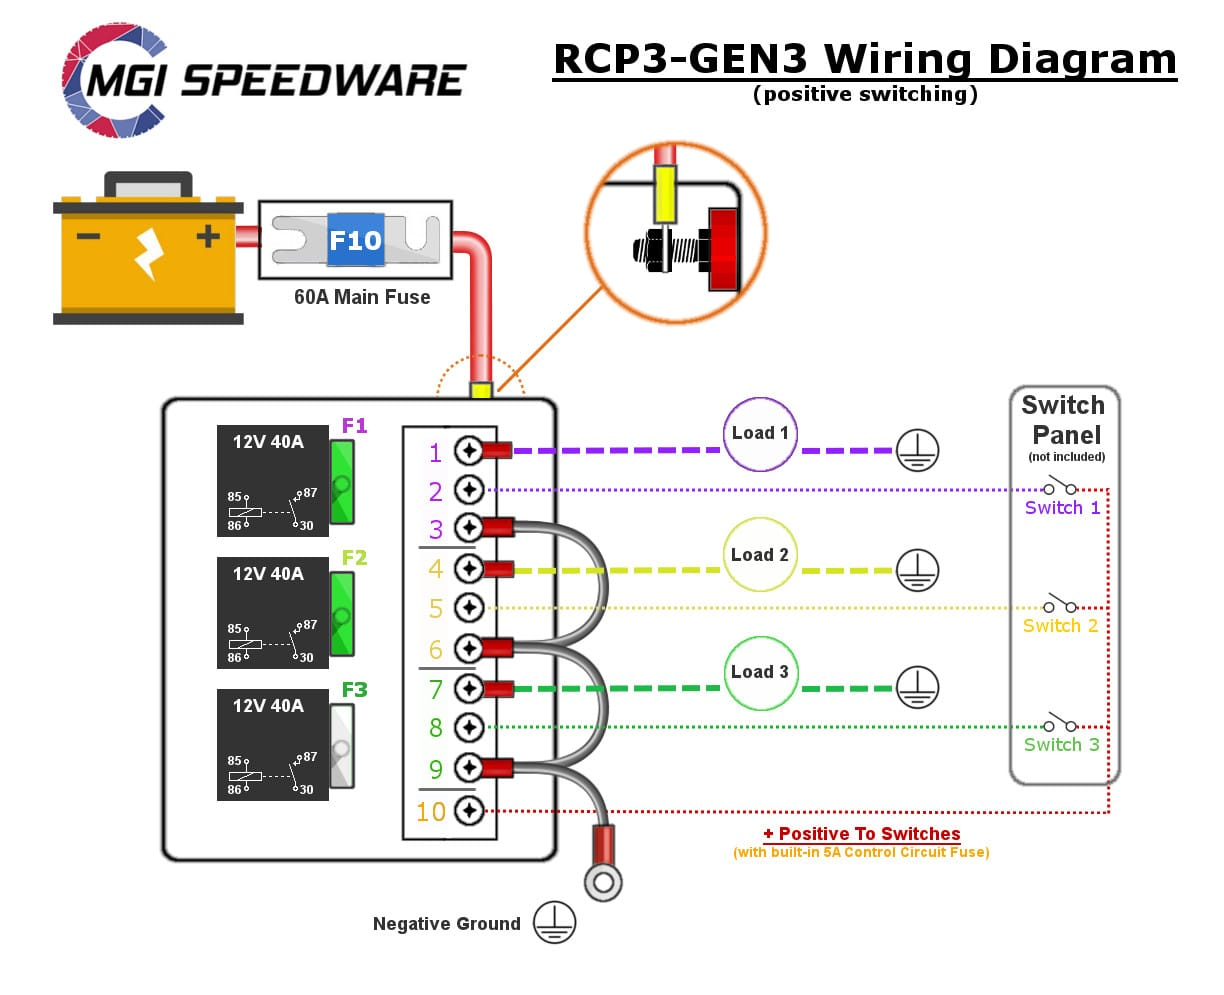 Automotive Relay Panels Choose 3 4 6 Or 8 Relays Mgi Speedware